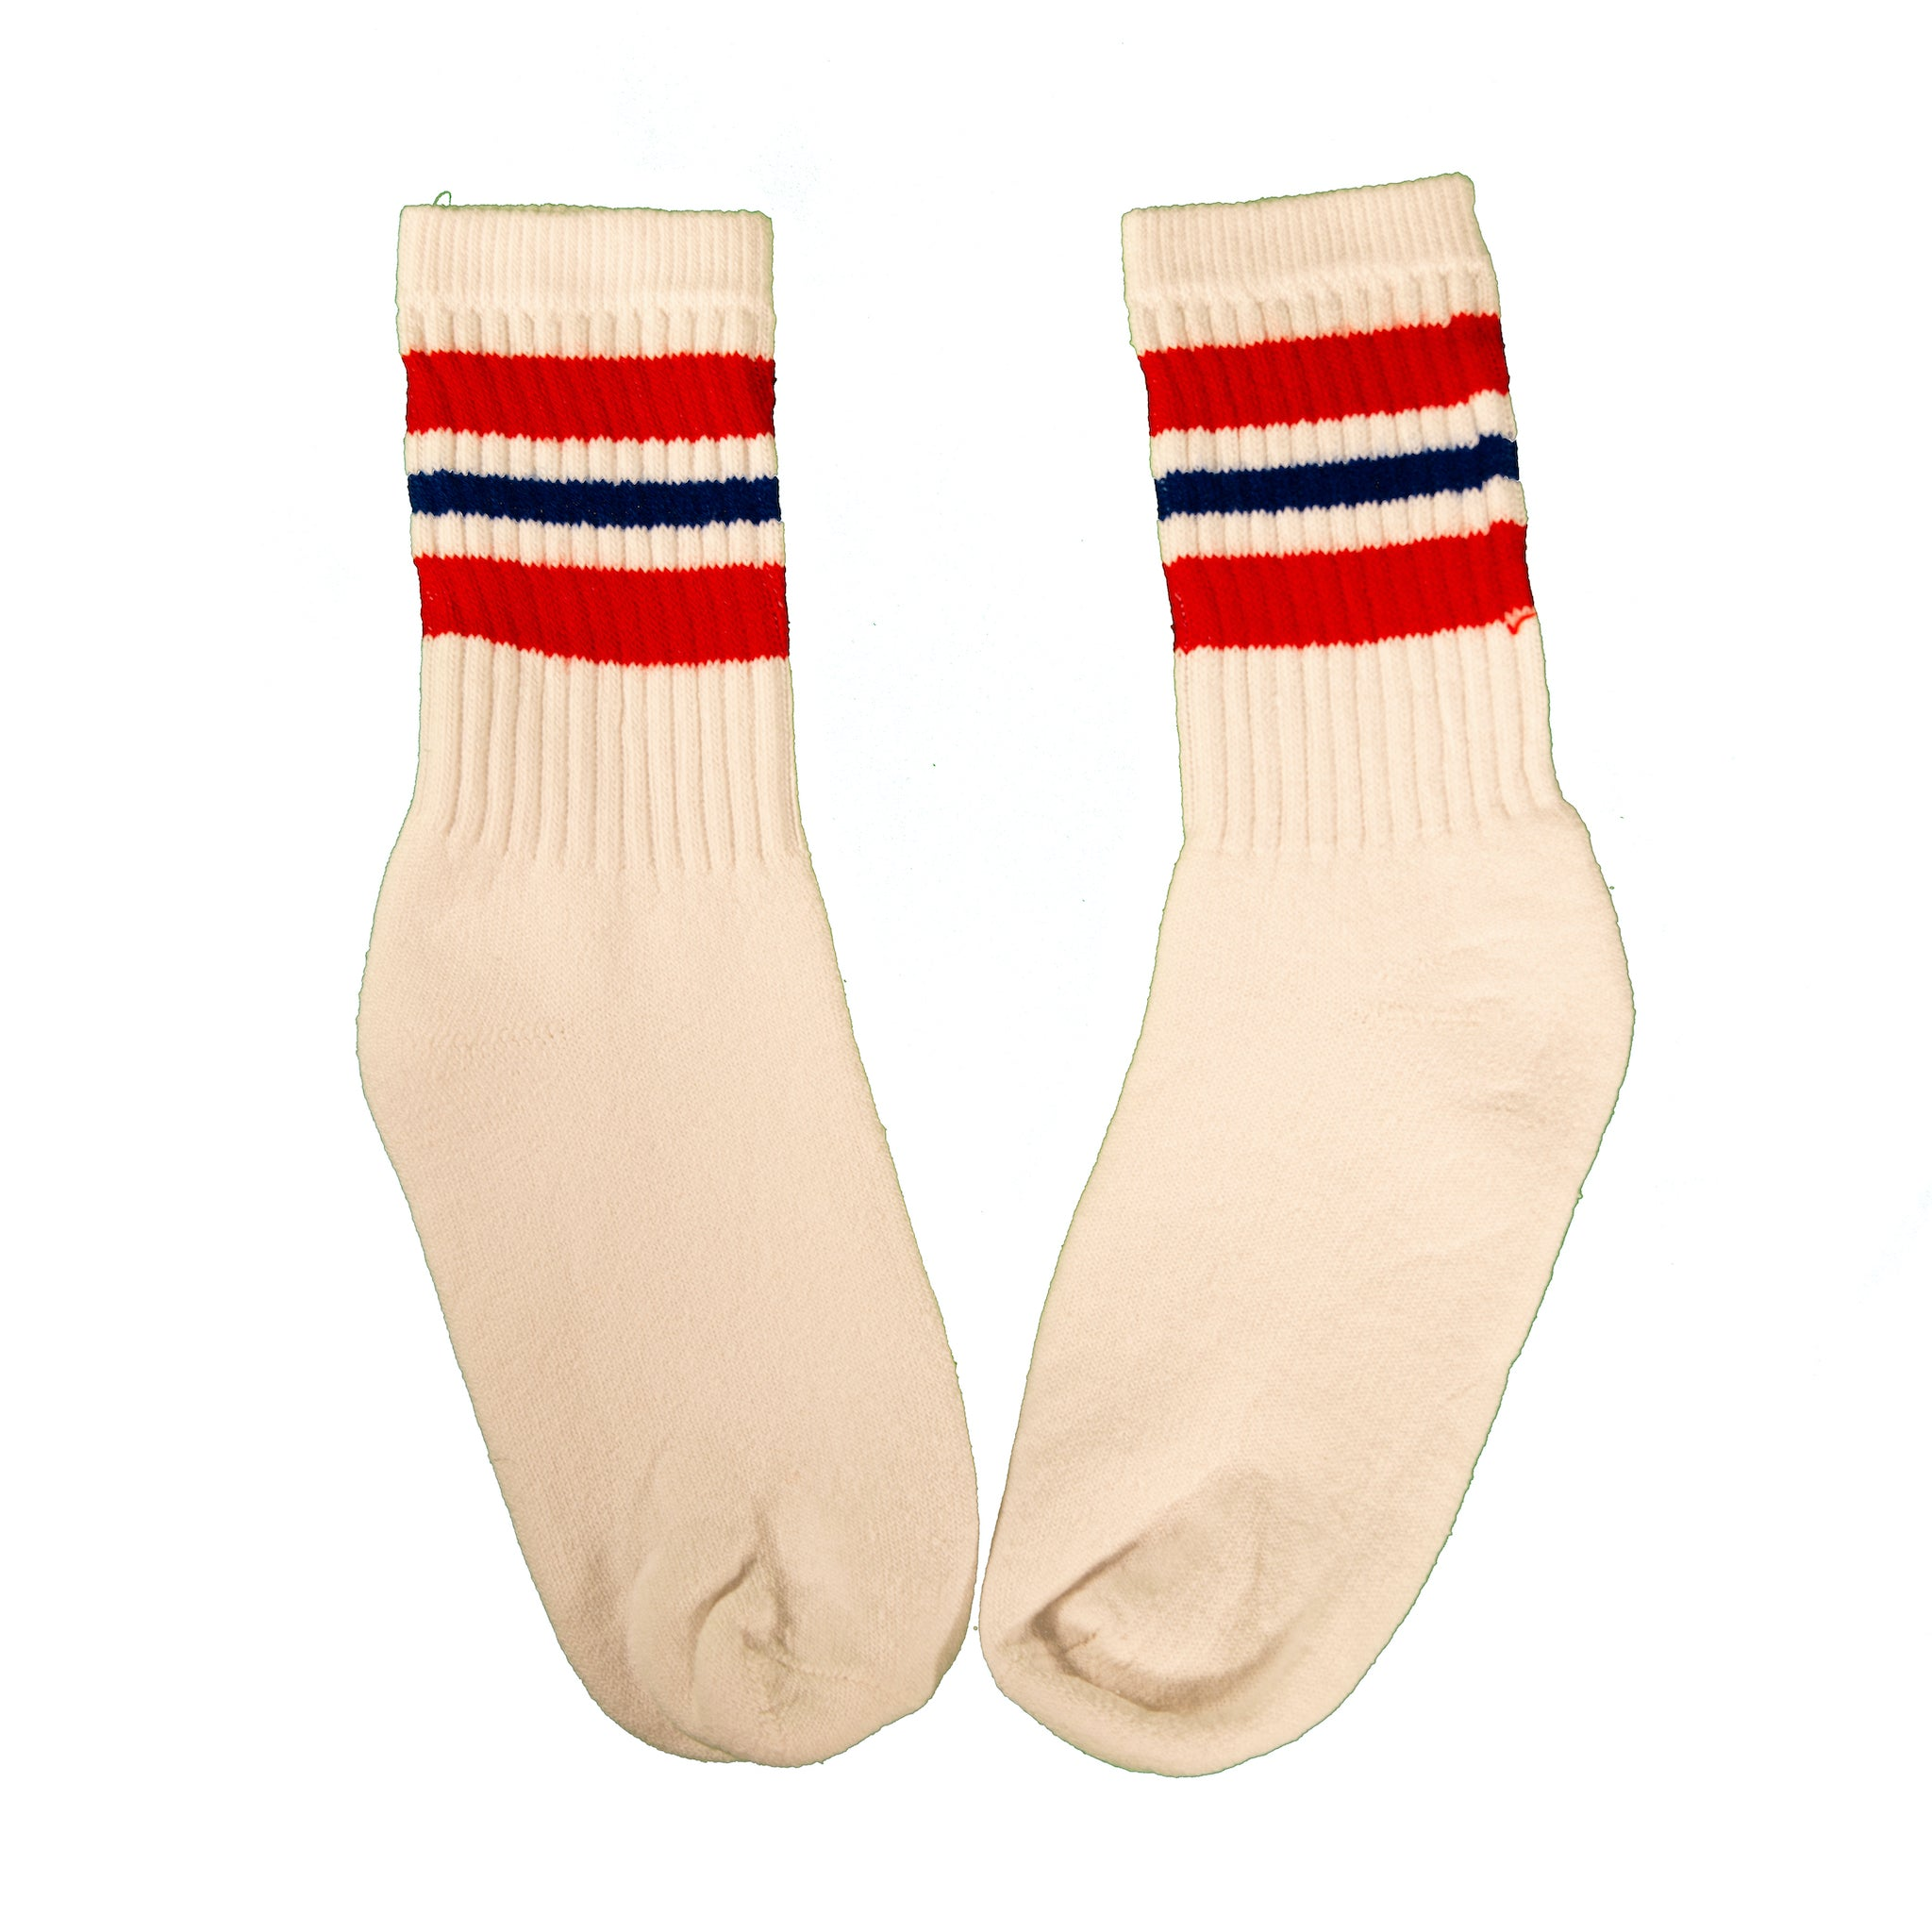 Milk And Honey Classic Tube Socks in Red and Royal